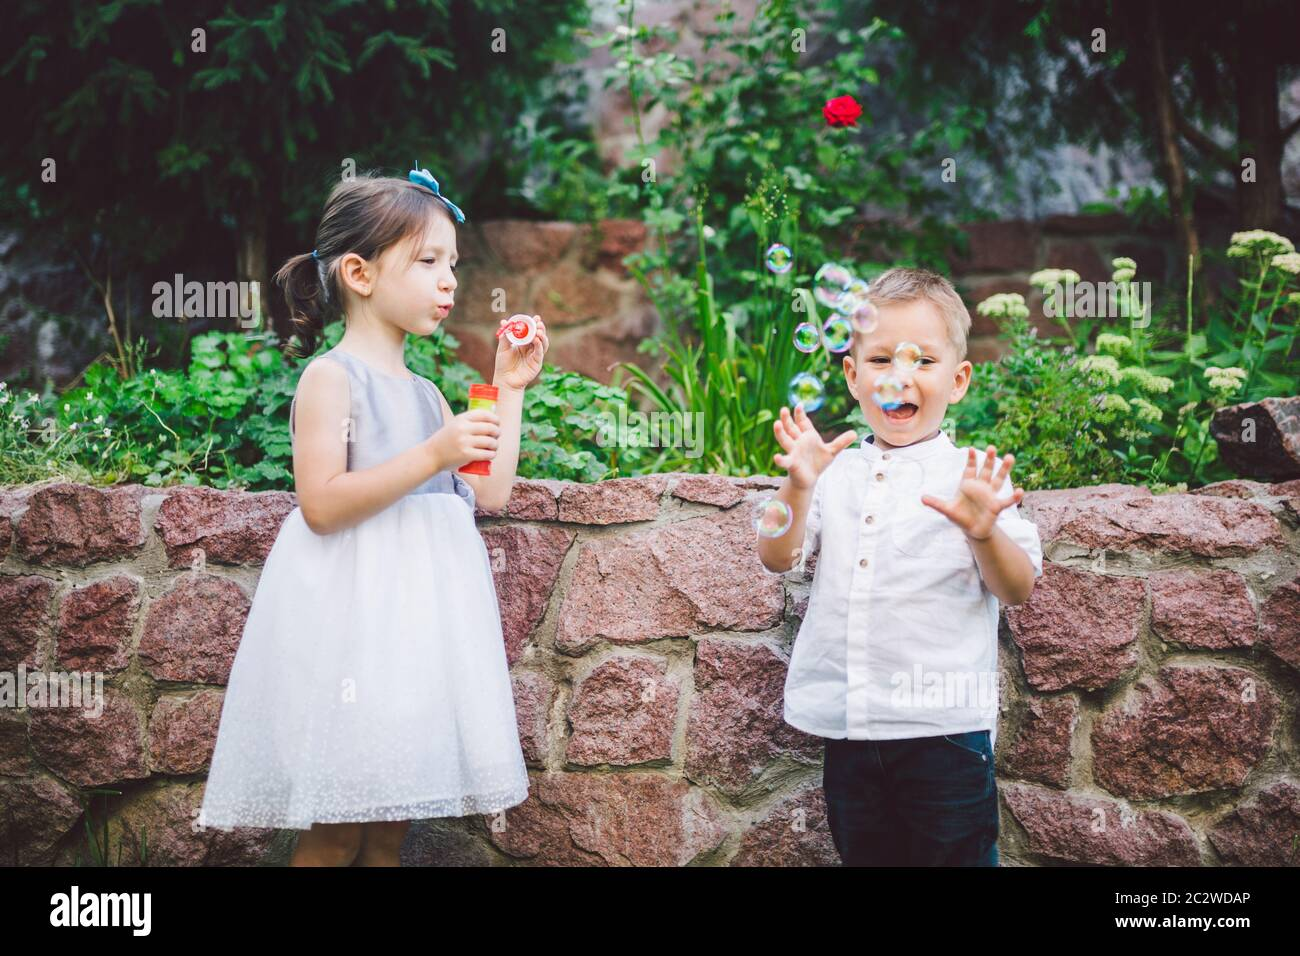 Two children in the park blowing soap bubbles and having fun. Two baby Playing With Soap Bubbles. brother and sister having fun Stock Photo